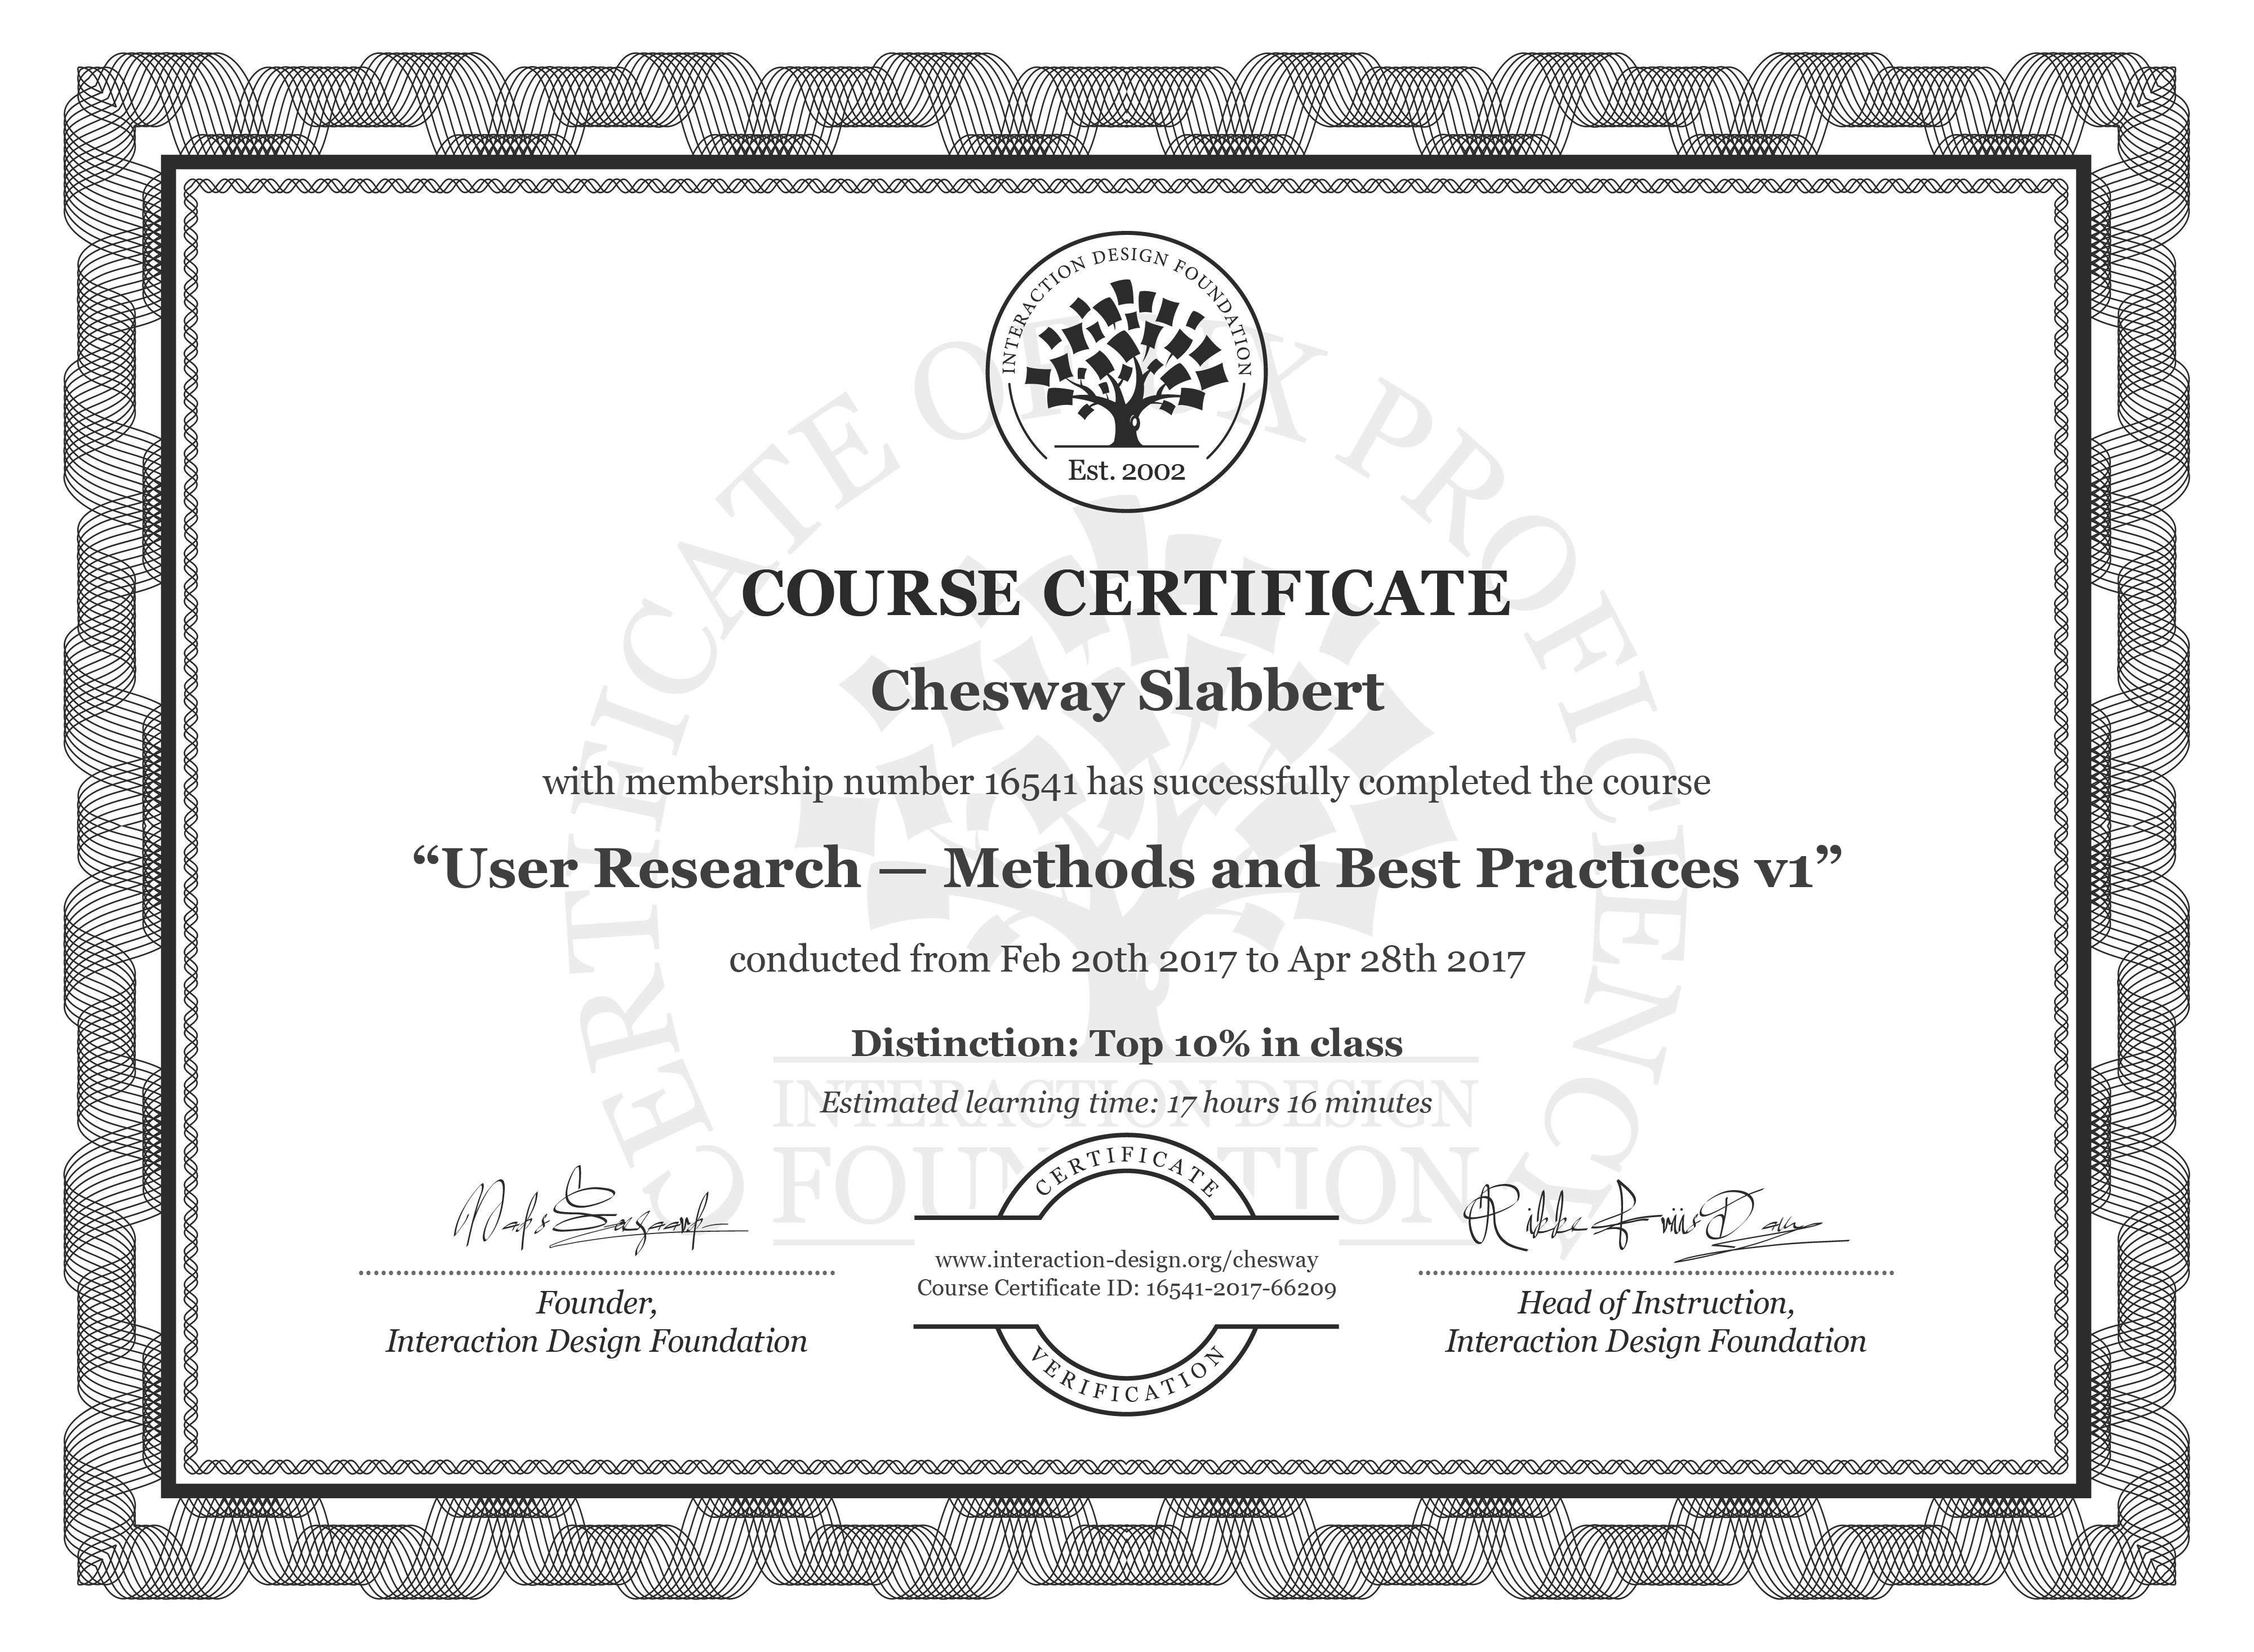 Chesway Slabbert: Course Certificate - User Research — Methods and Best Practices